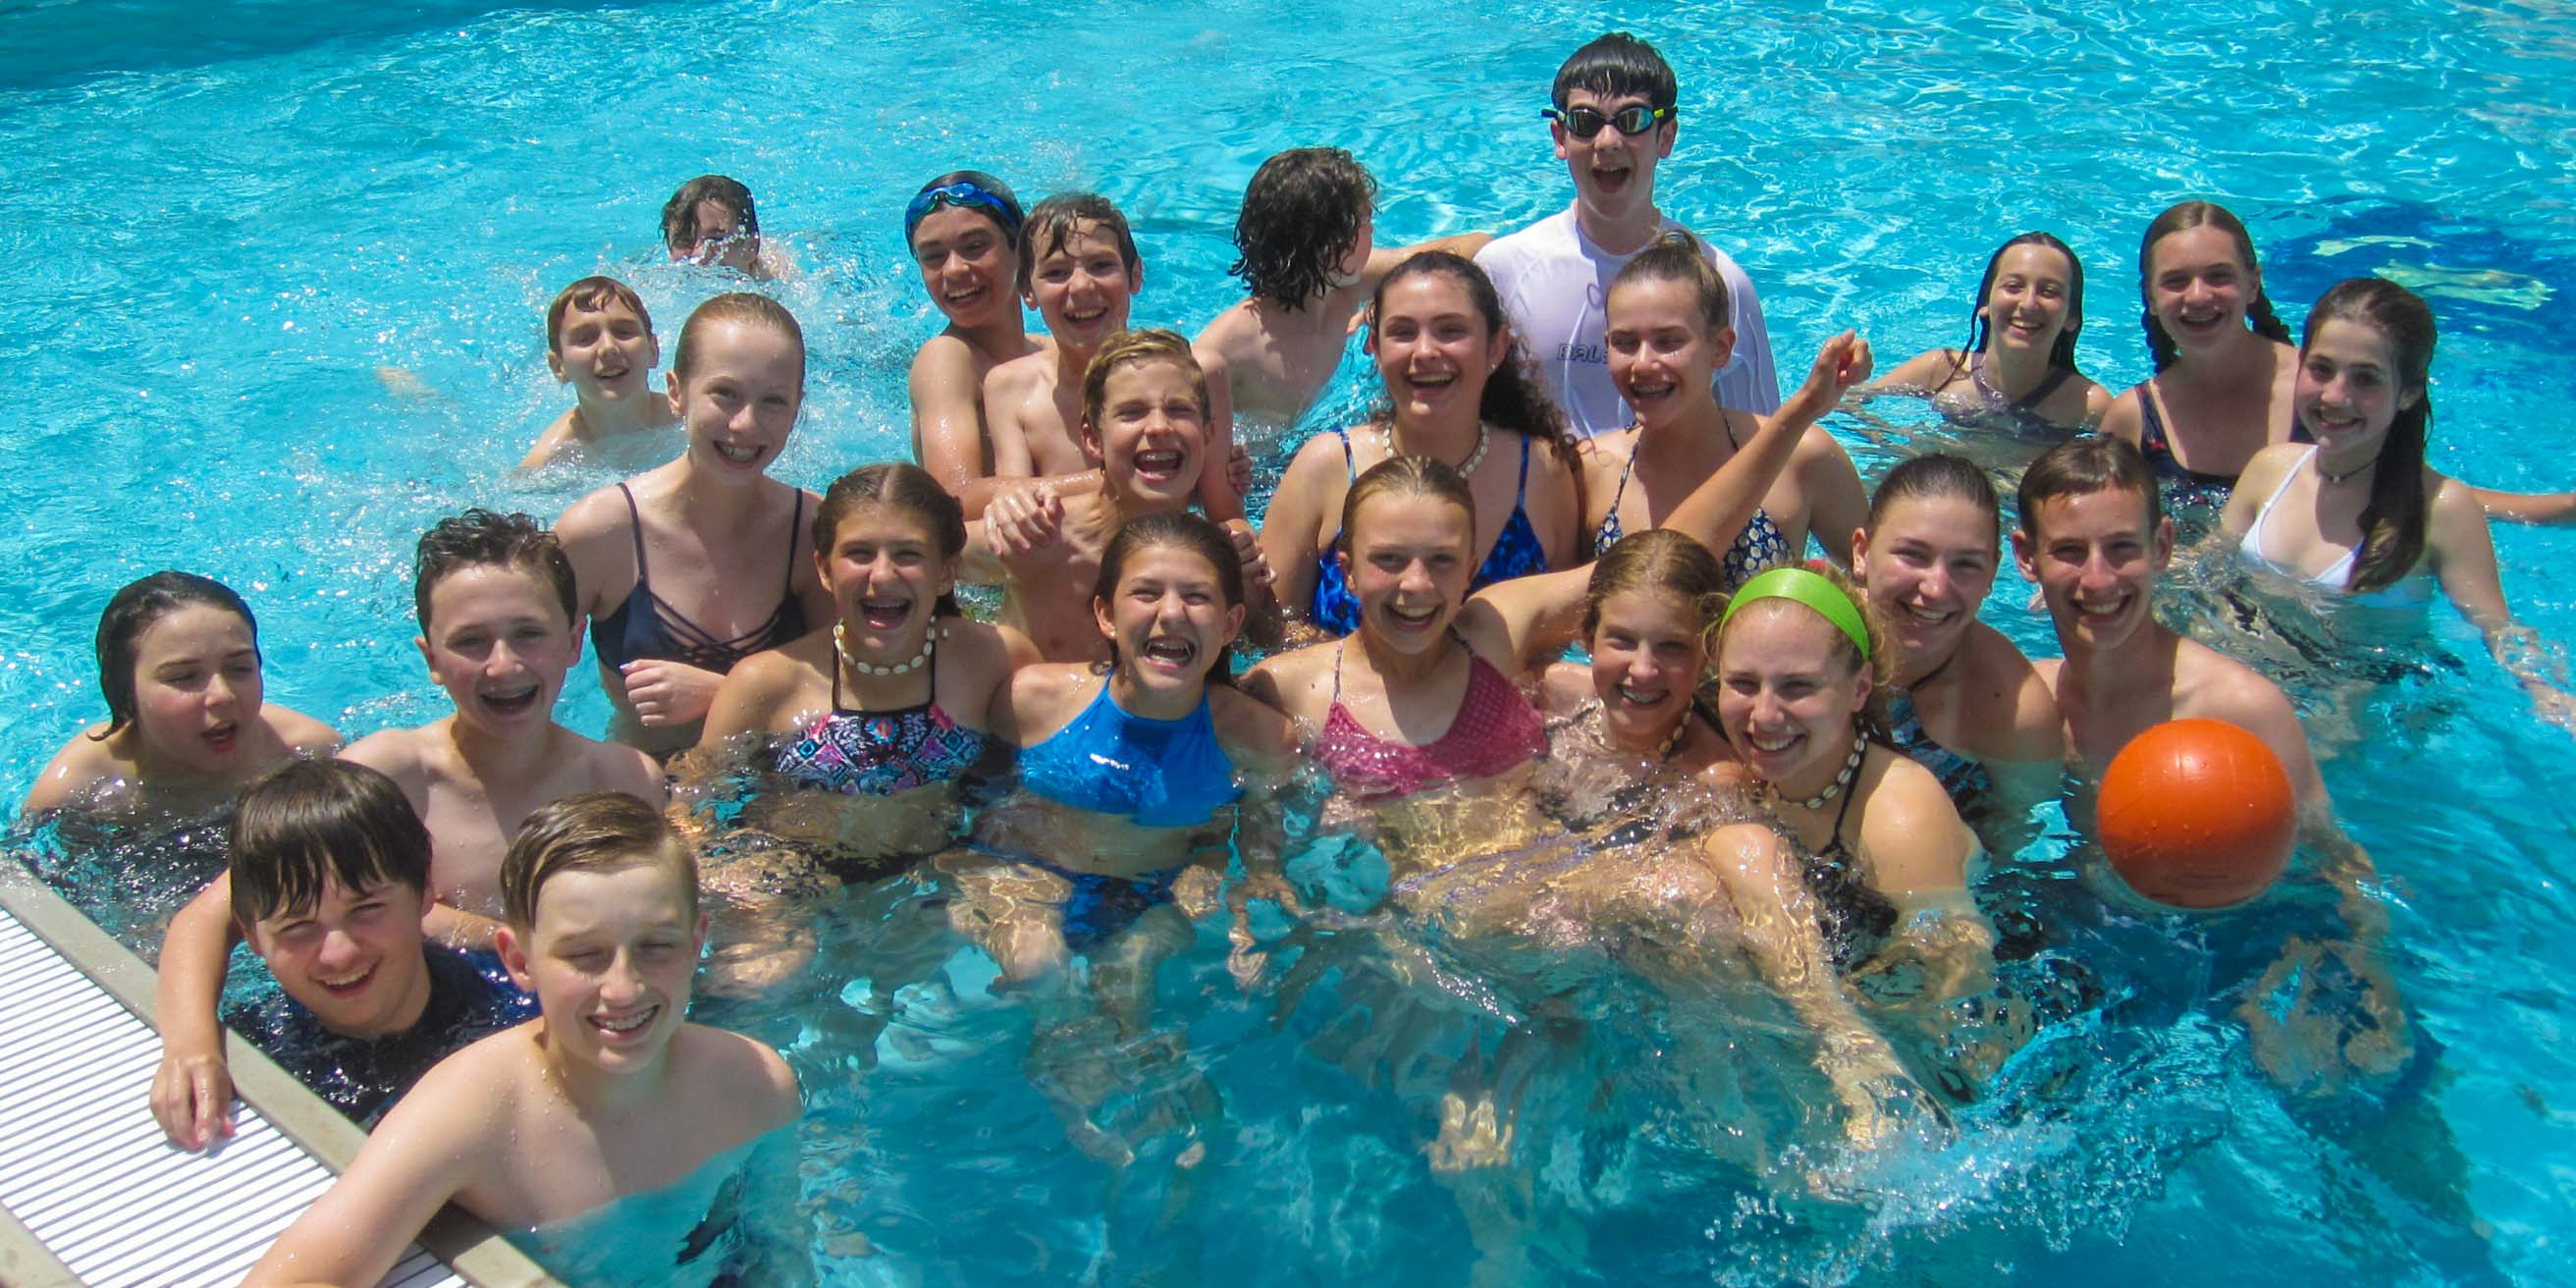 Group of kids in pool